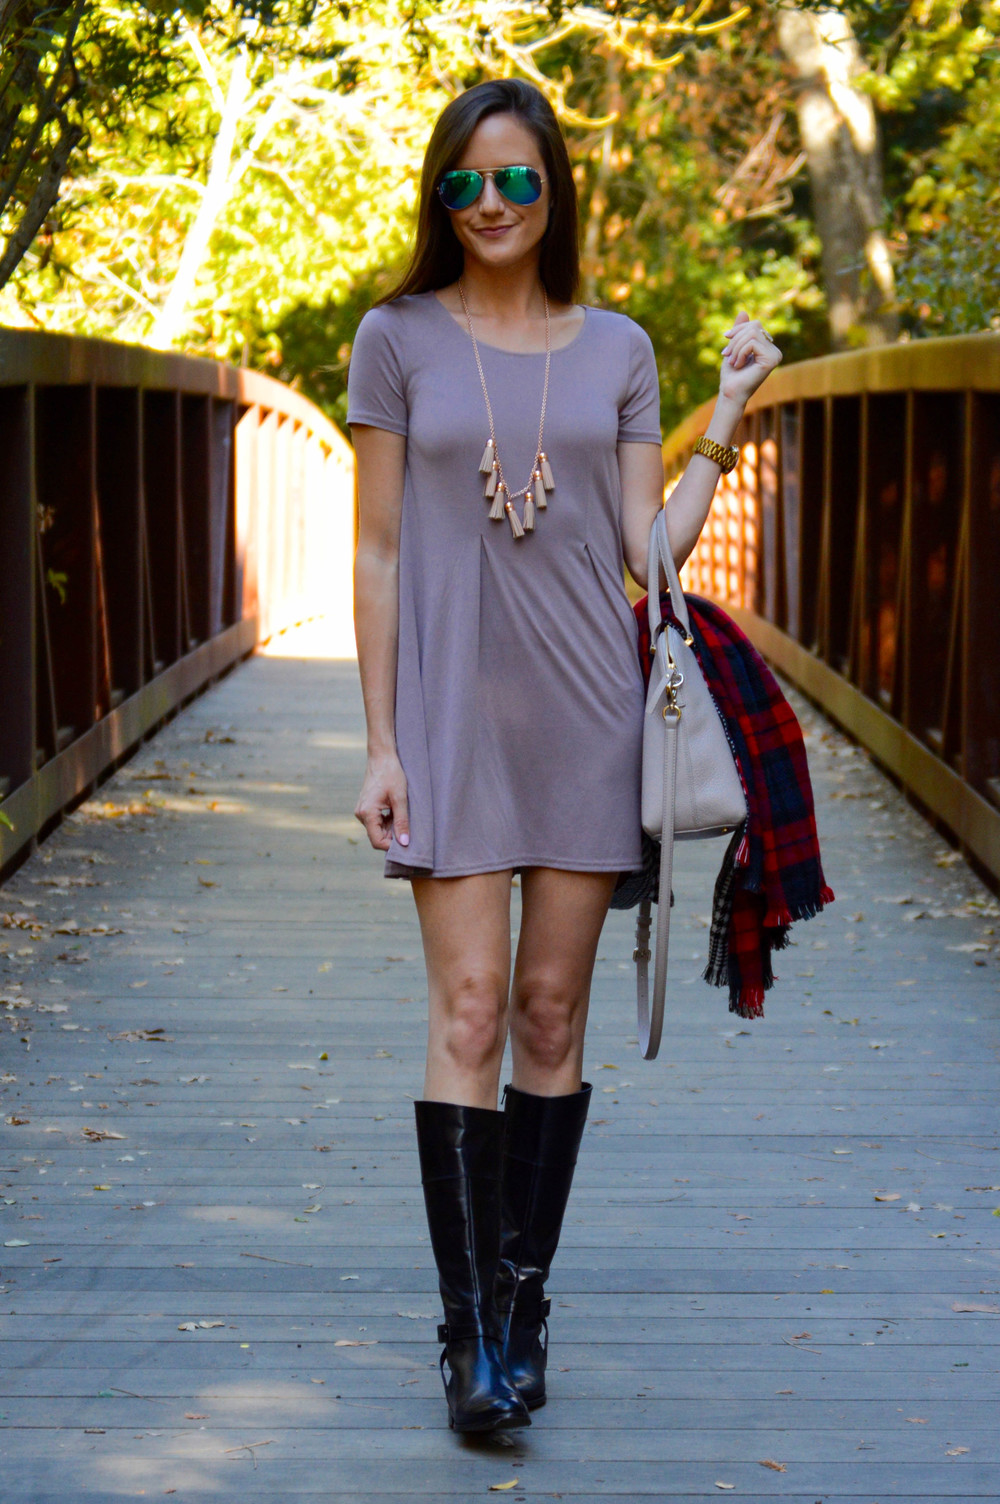 Shop the Look Below. Dress:  Urban Outfitters  (I own two colors and it's SO comfy1) Boots: c/o  Skinnycalf Boots . Bag:  Kate Spade . Scarf: I honestly can't remember, but similar  here  and  here . Necklace:  BaubleBar . Sunglasses: Off brand. Similar  here  and  here .